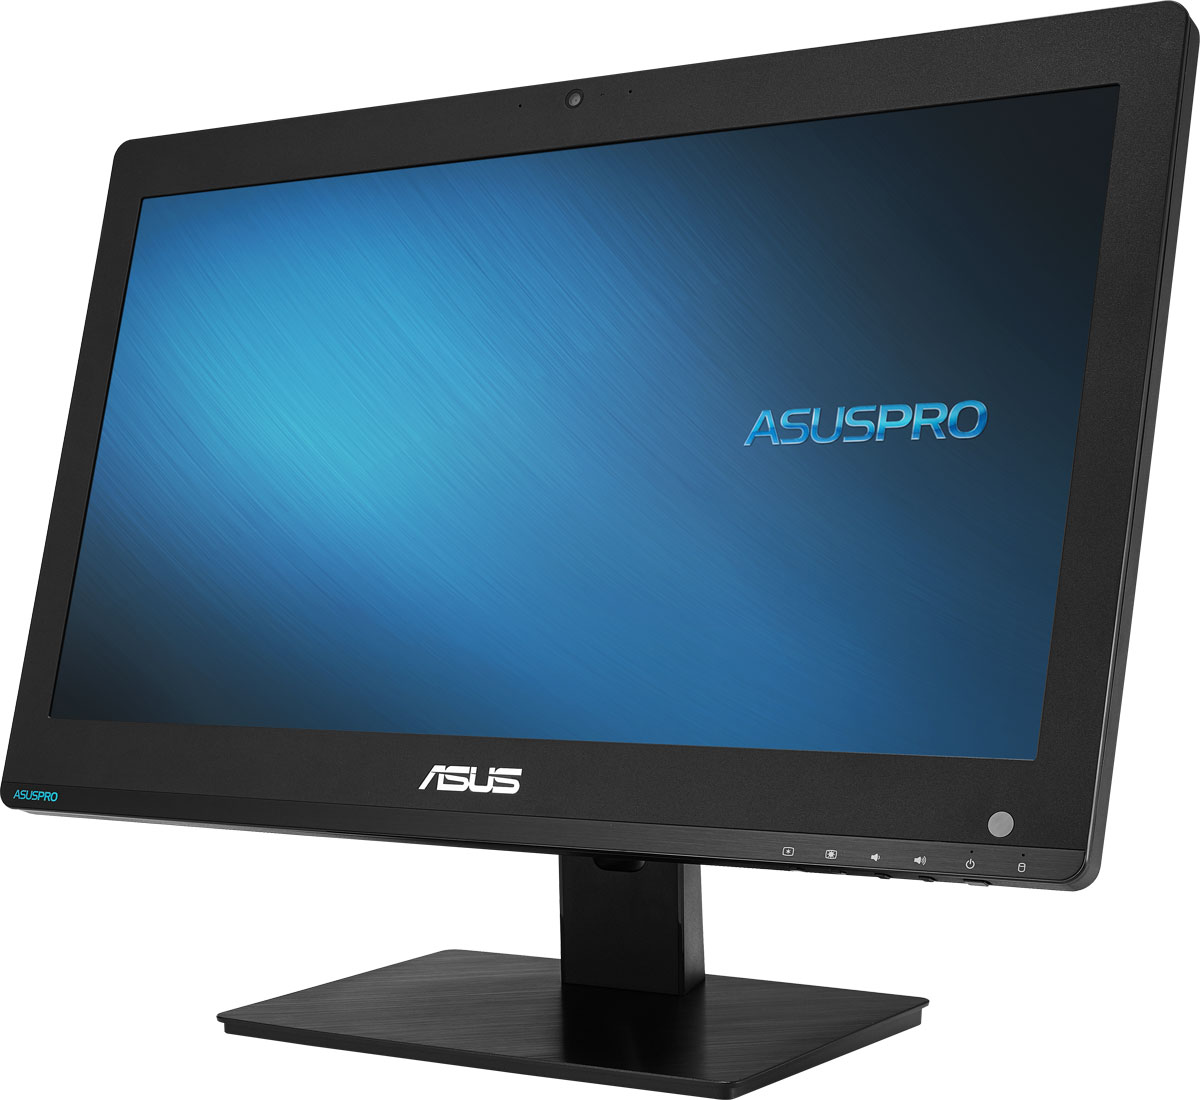 ASUS PRO A4321UTH-BE014D, Black моноблок